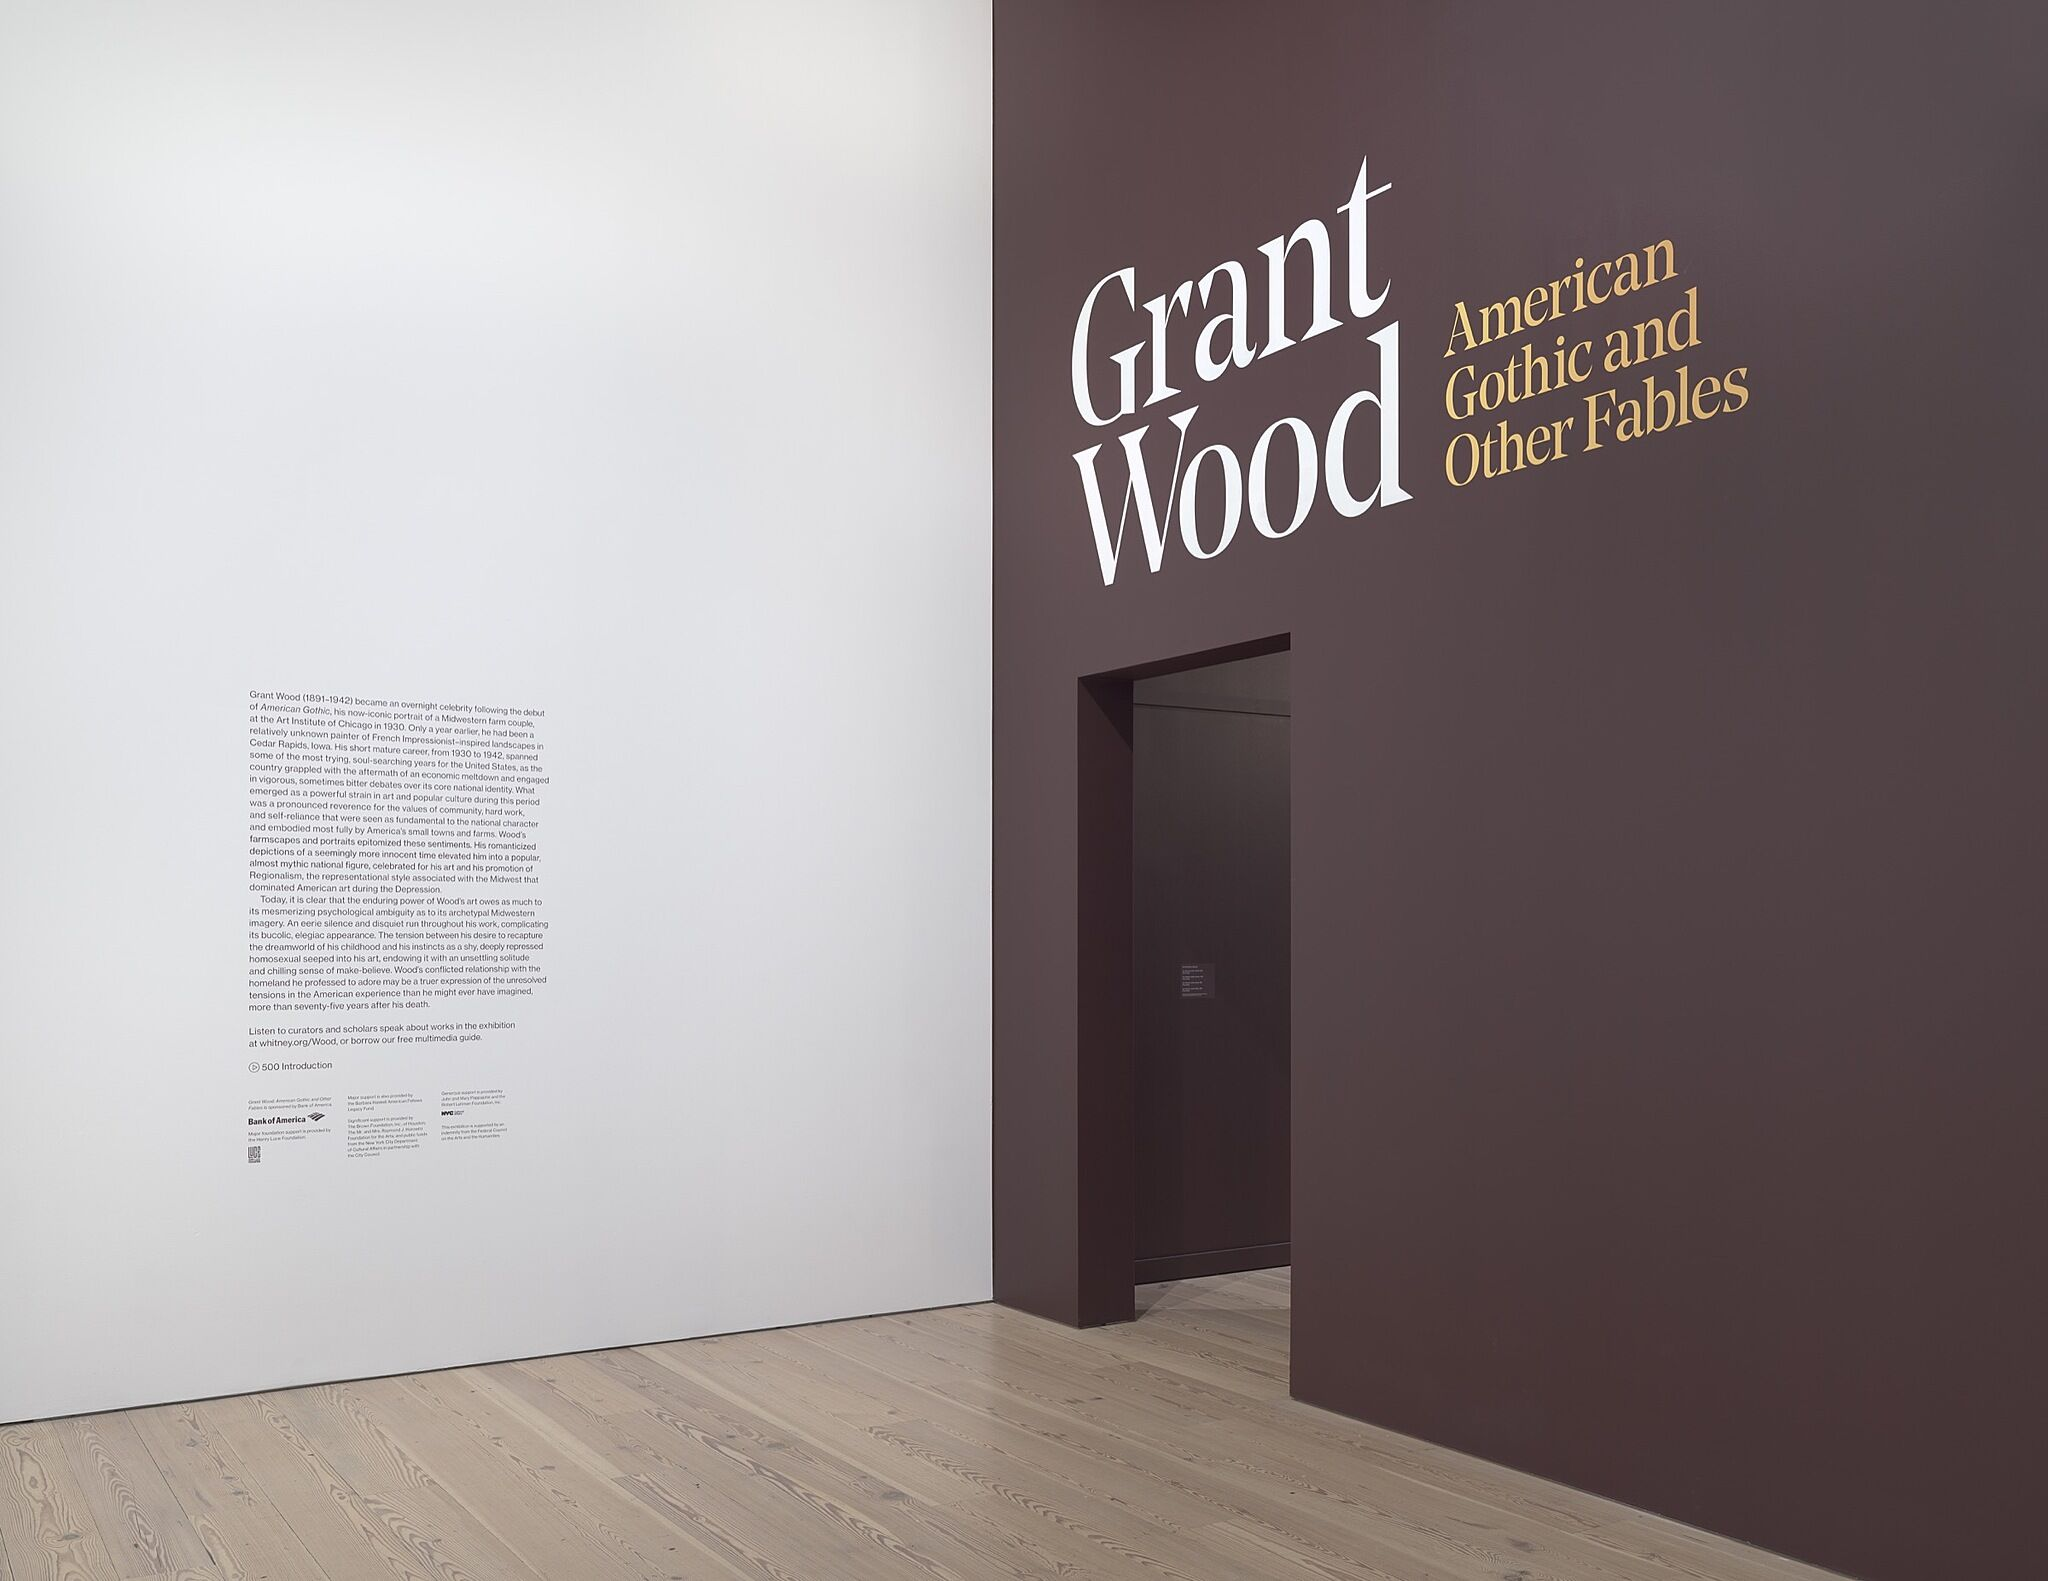 Wall text opening an exhibition.